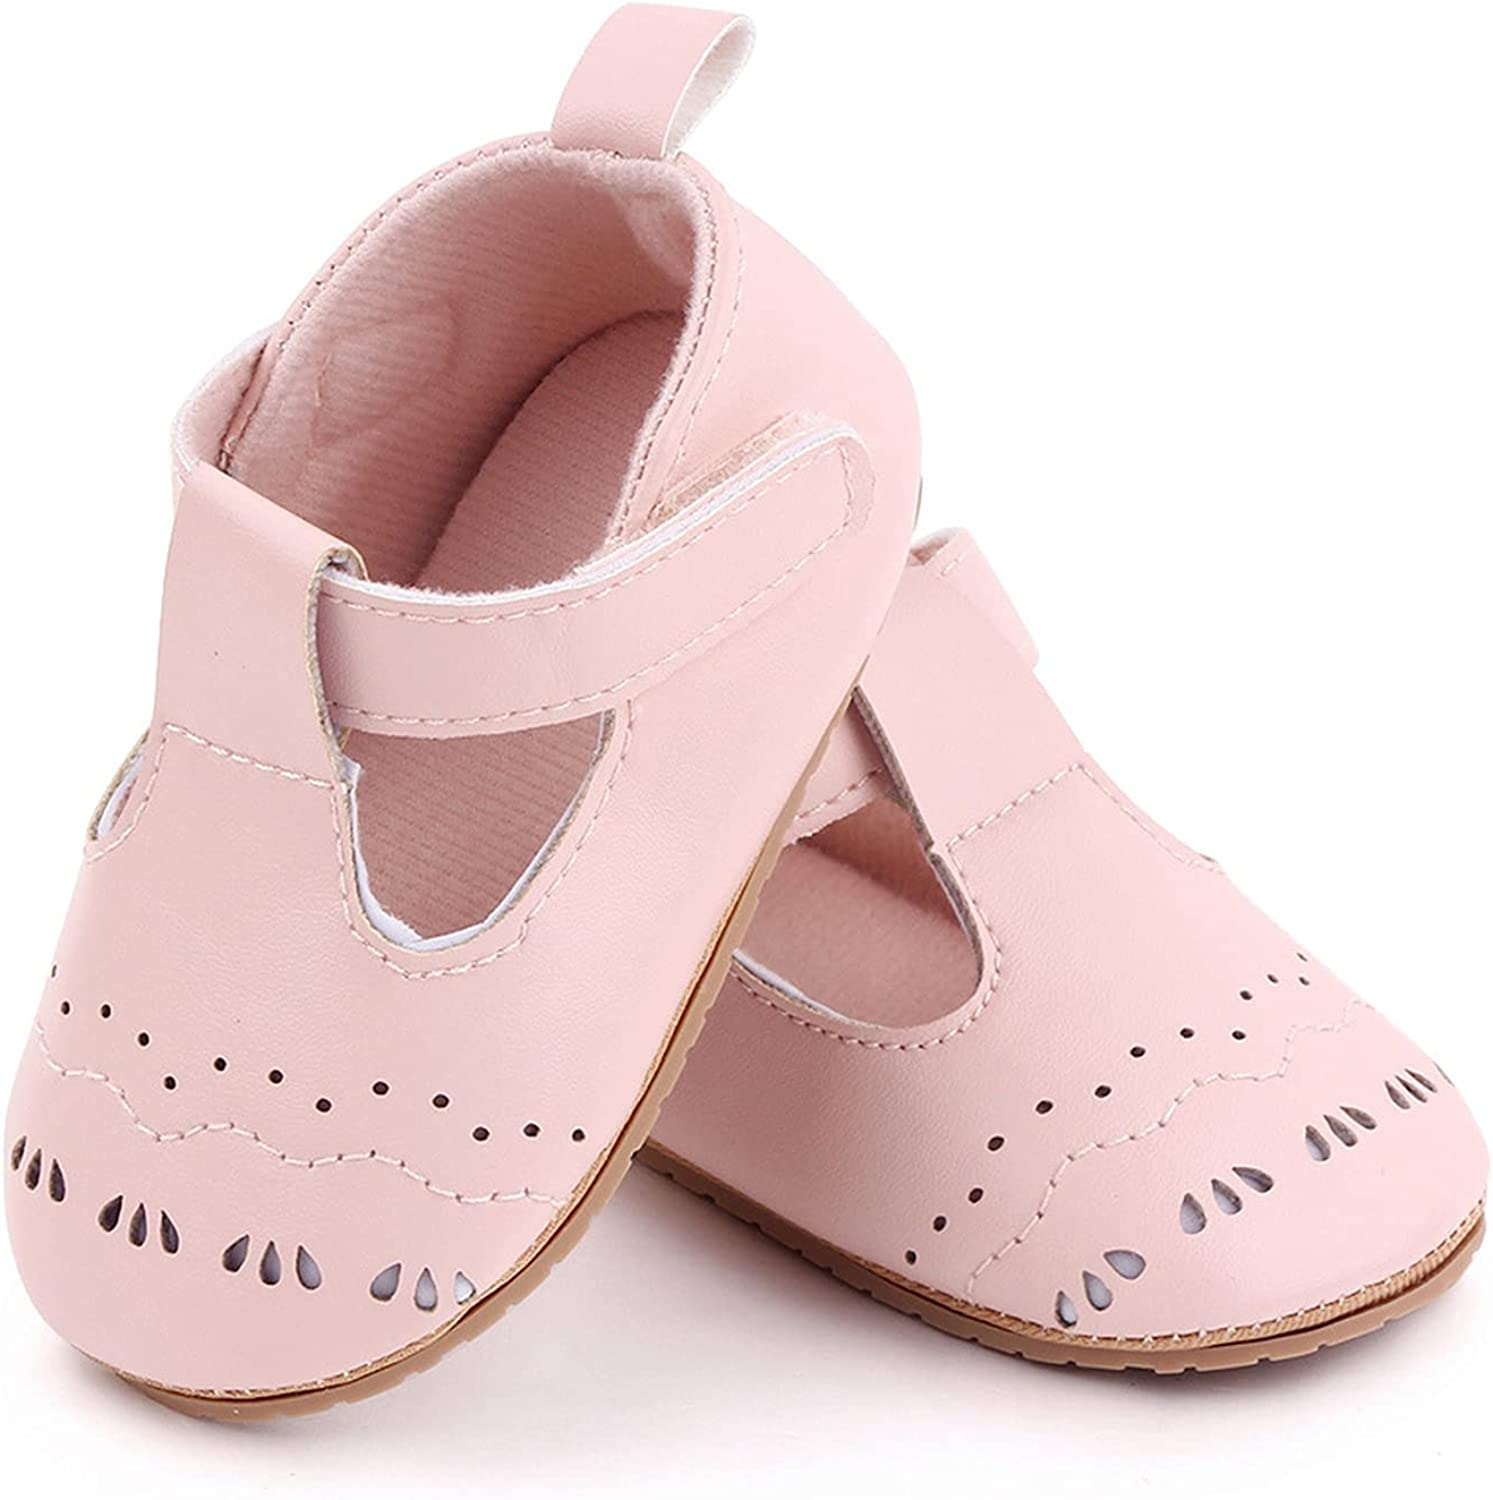 Baby Girls Mary Jane Flats Shoes Infant Sneakers Non-Slip Soft Leather Rubber Sole Toddler First Walkers Princess Shoes